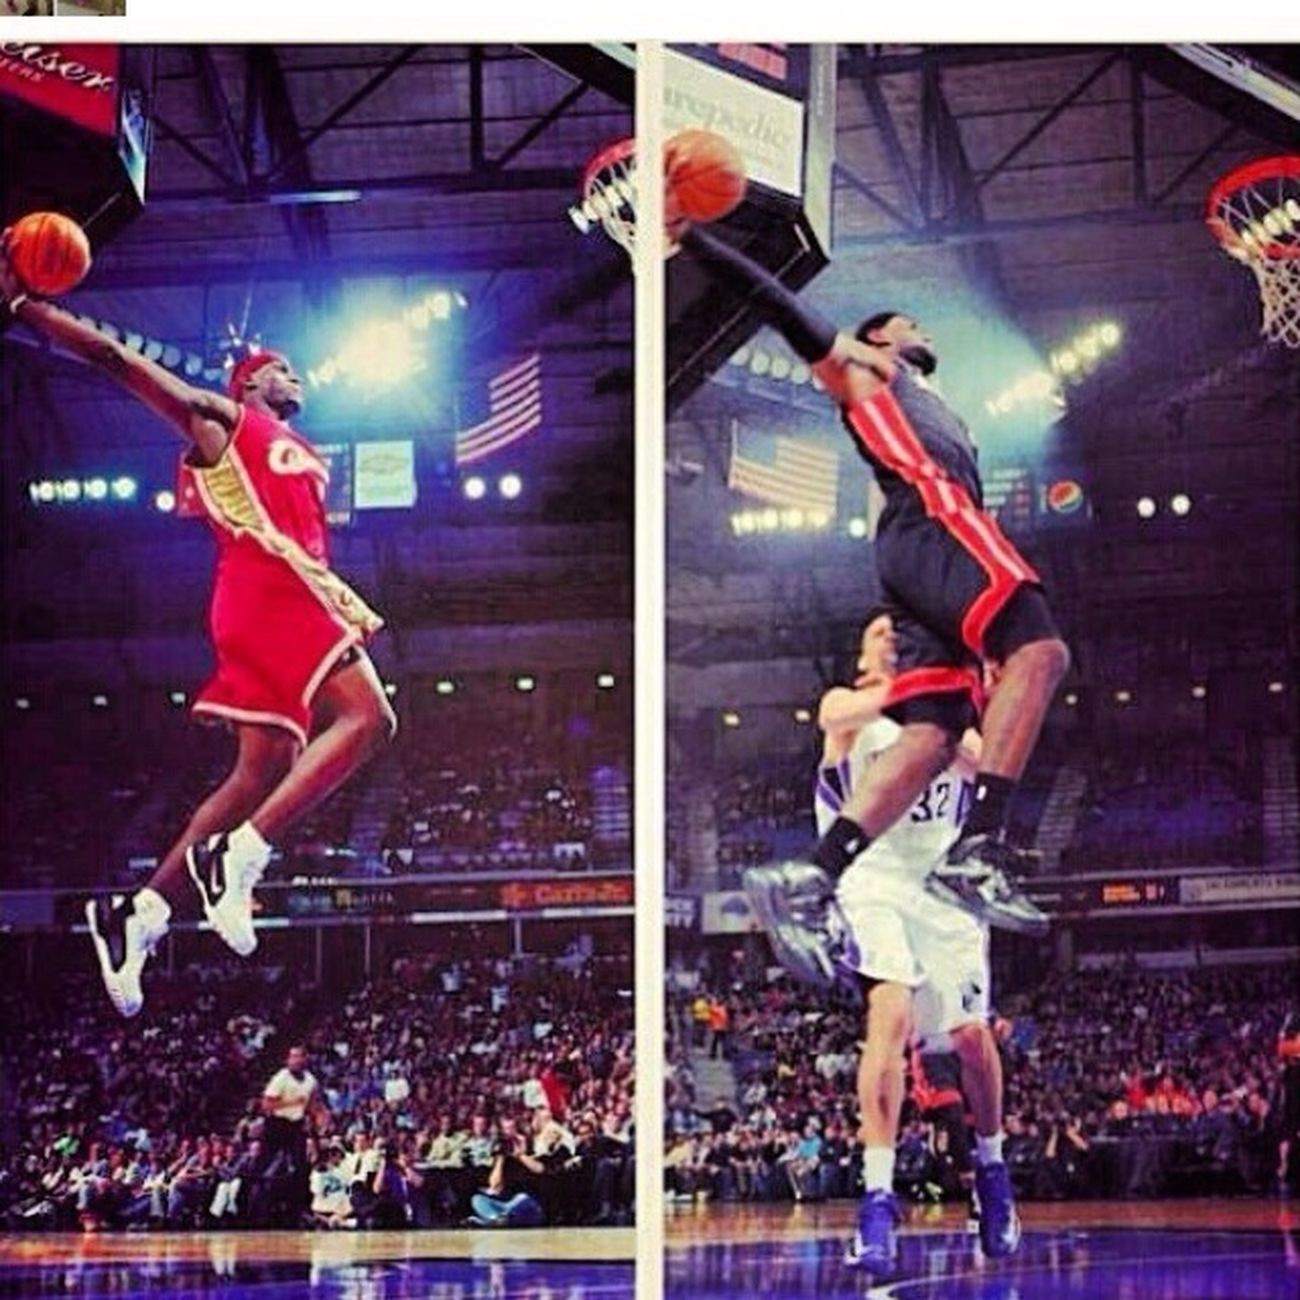 The Best NBA Player Alive